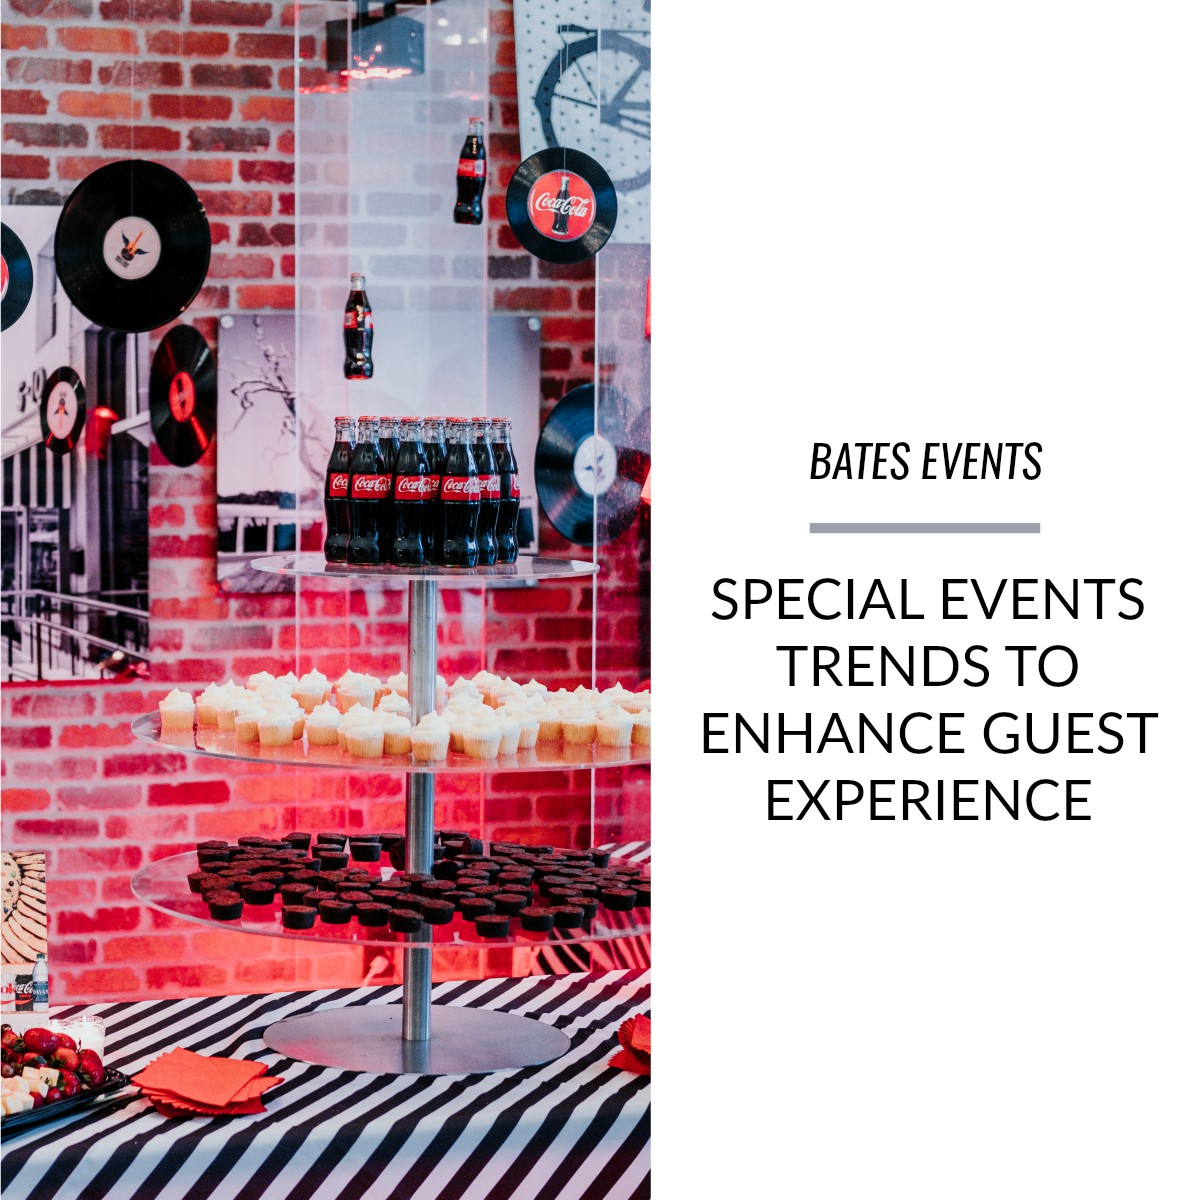 SPECIAL EVENTS TRENDS TO ENHANCE GUEST EXPERIENCE